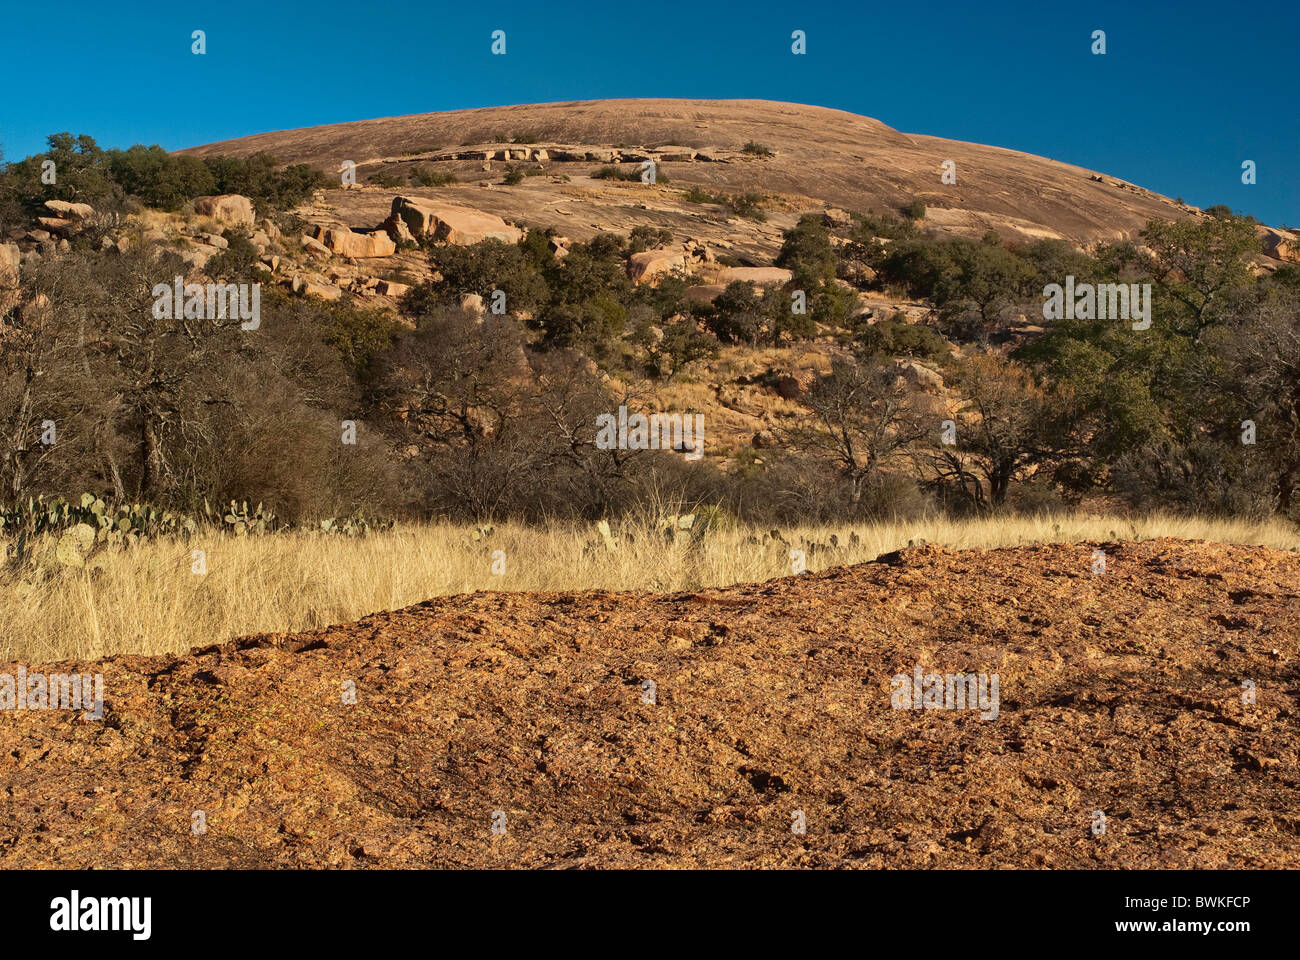 Main Dome at Enchanted Rock State Natural Area, in Hill Country near Fredericksburg, Texas, USA - Stock Image